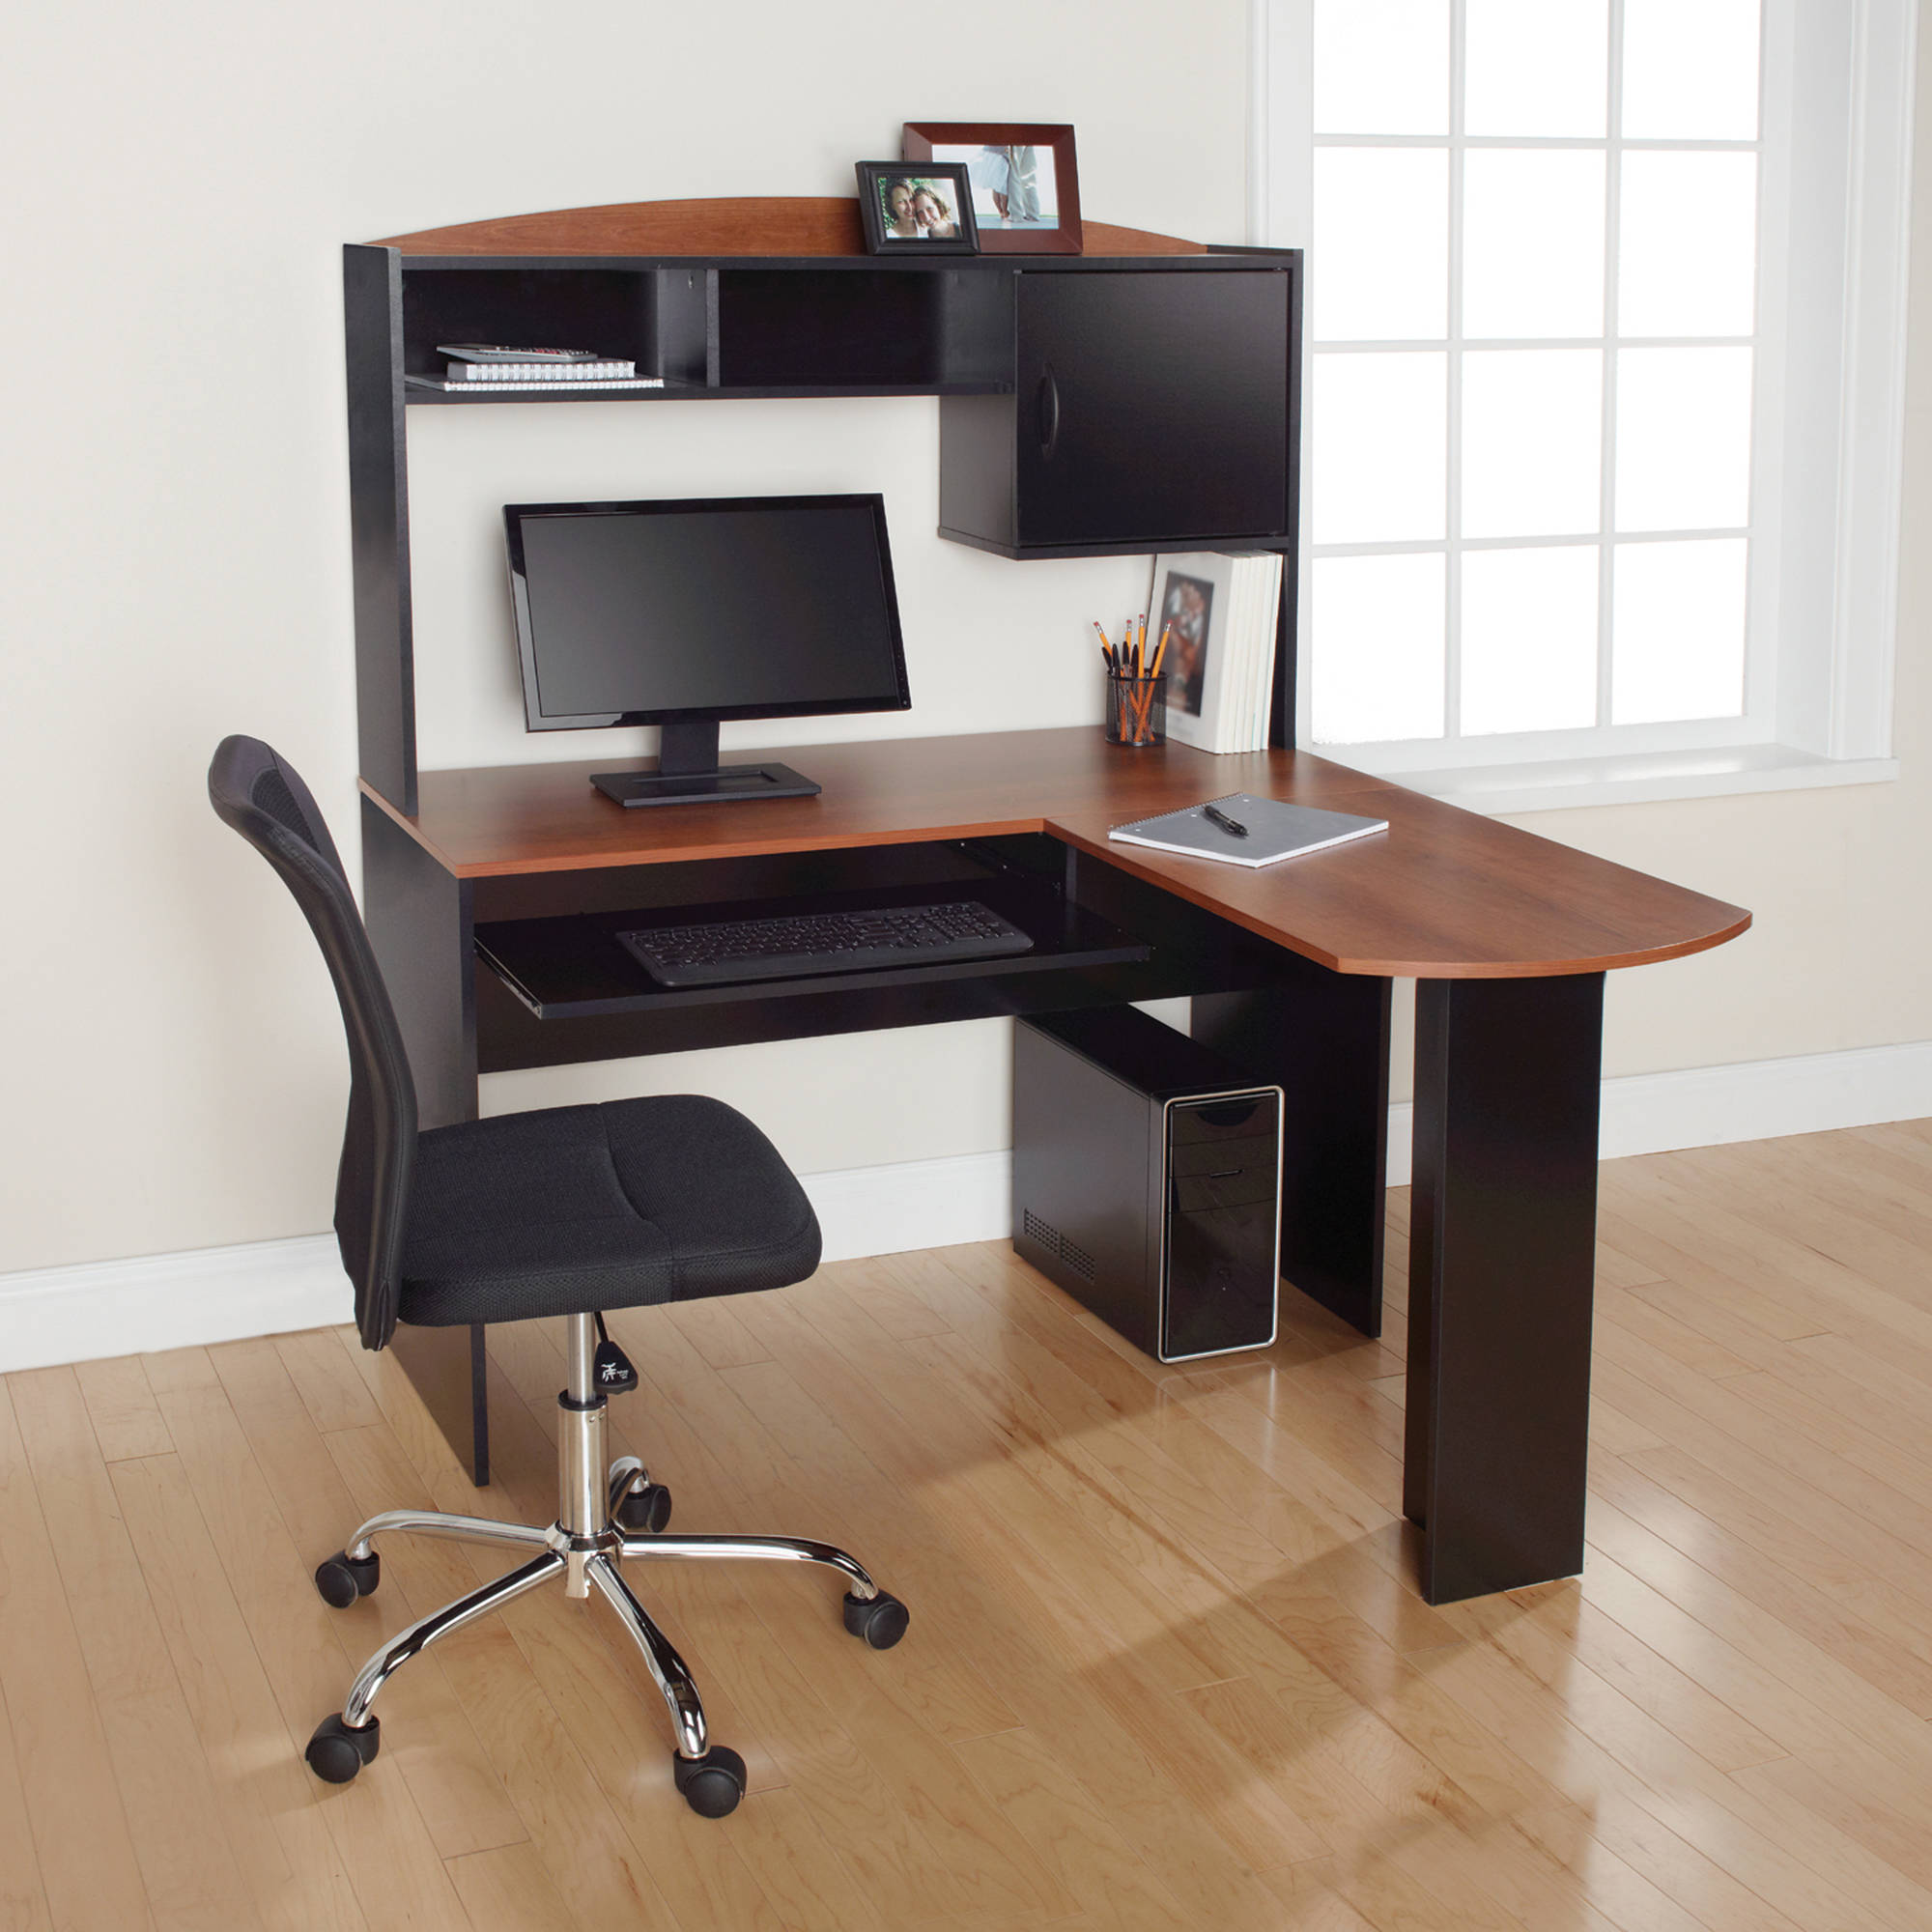 mainstays l shaped desk with hutch and keyboard tray walmart com